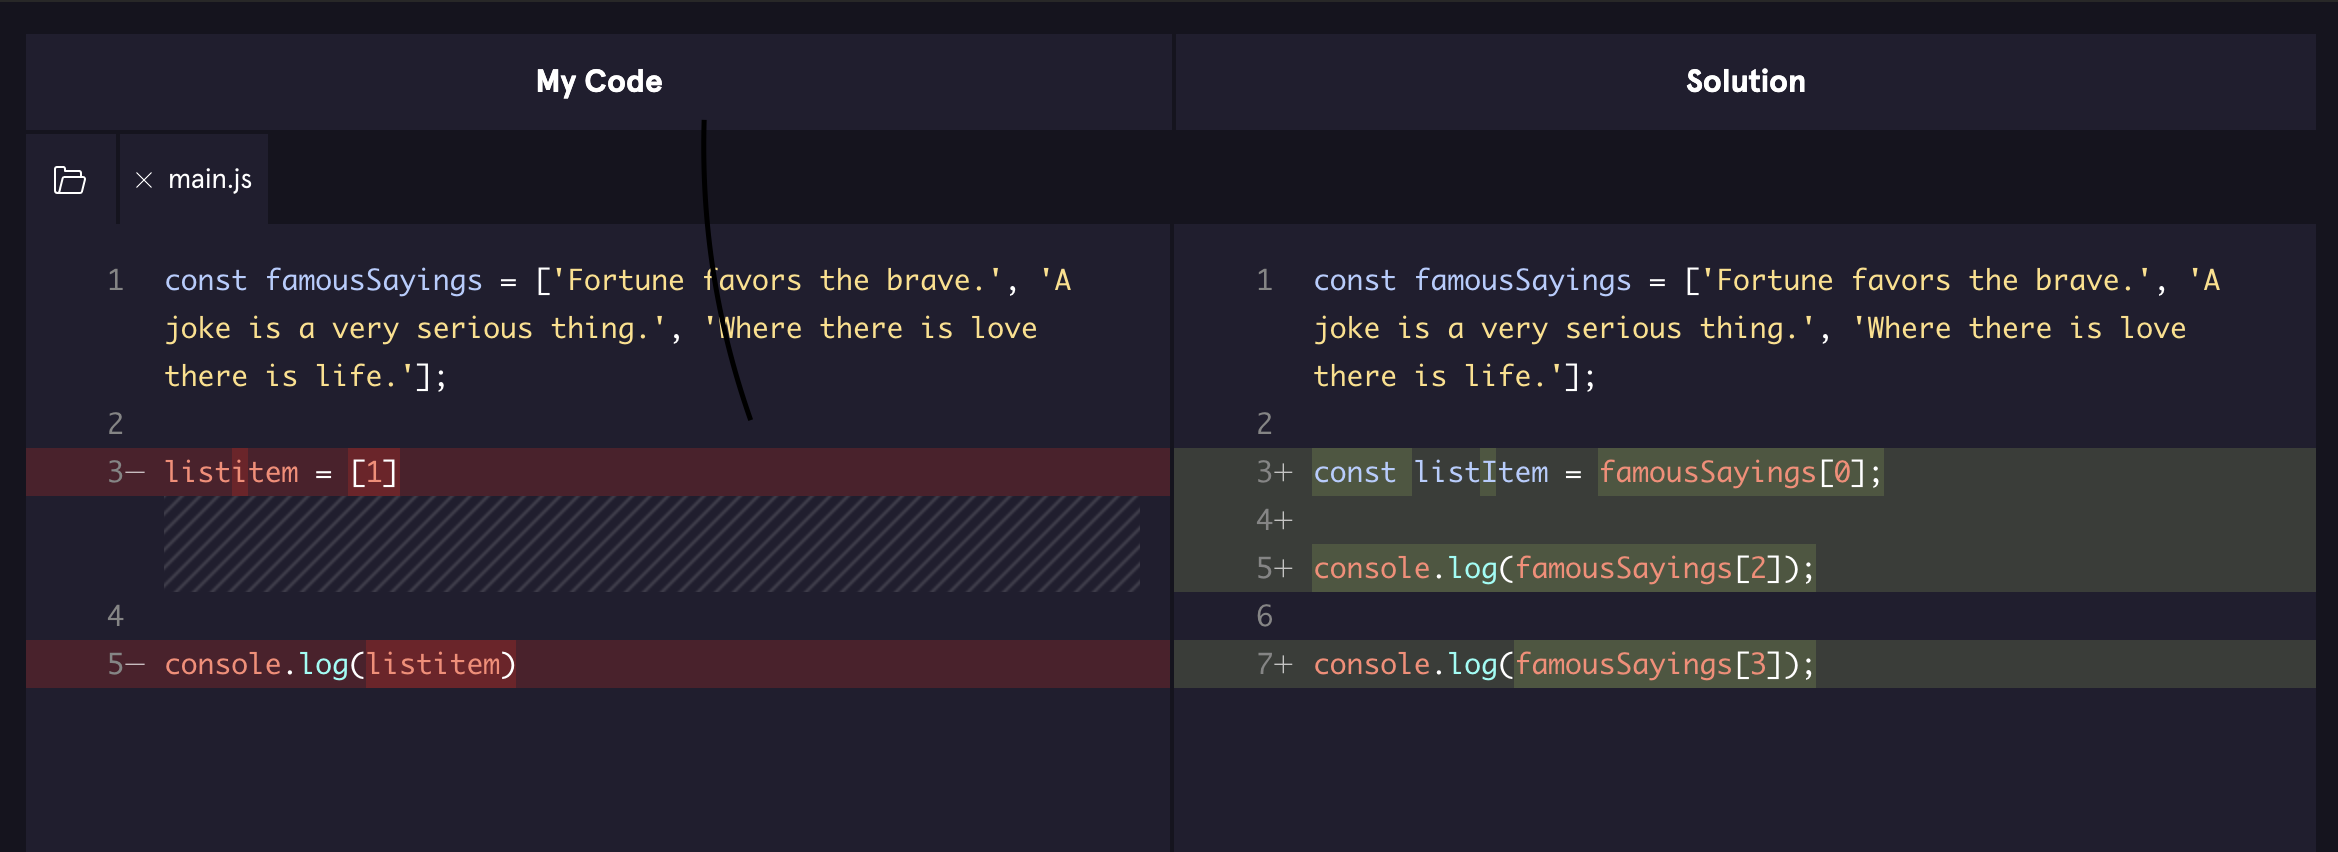 image of a diff between two code files